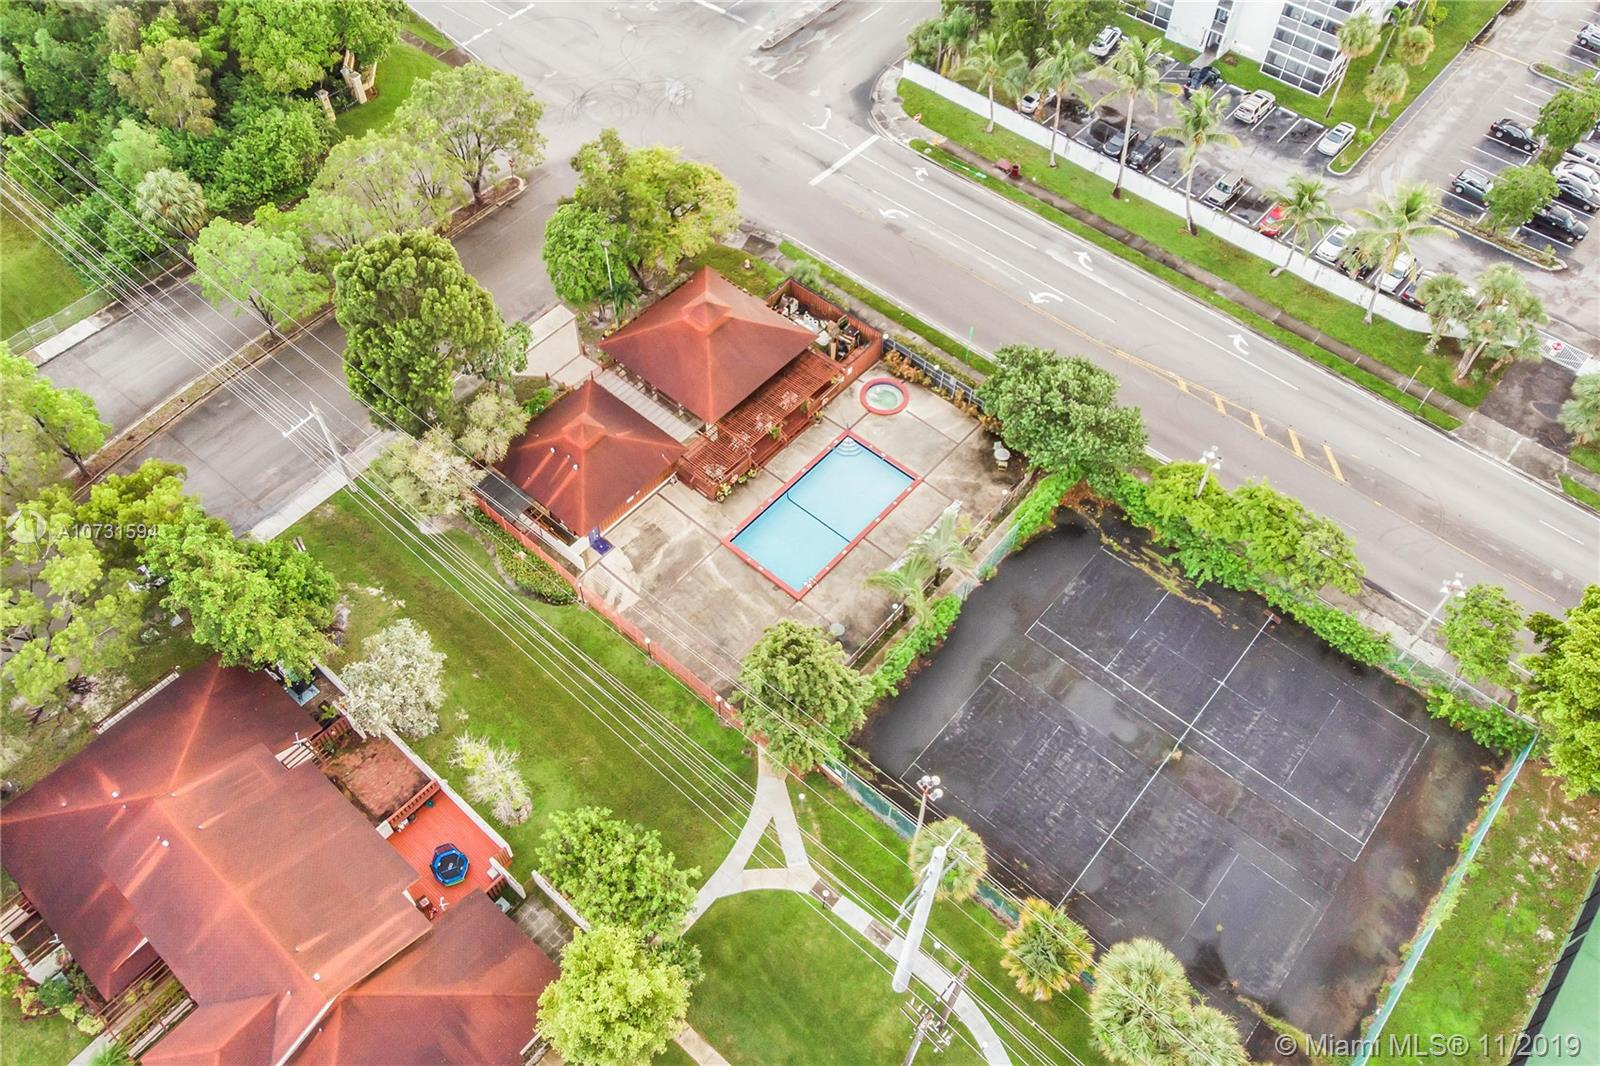 515 NW 210th St # 36, Miami Gardens, Florida 33169, 3 Bedrooms Bedrooms, ,2 BathroomsBathrooms,Residential,For Sale,515 NW 210th St # 36,A10731594